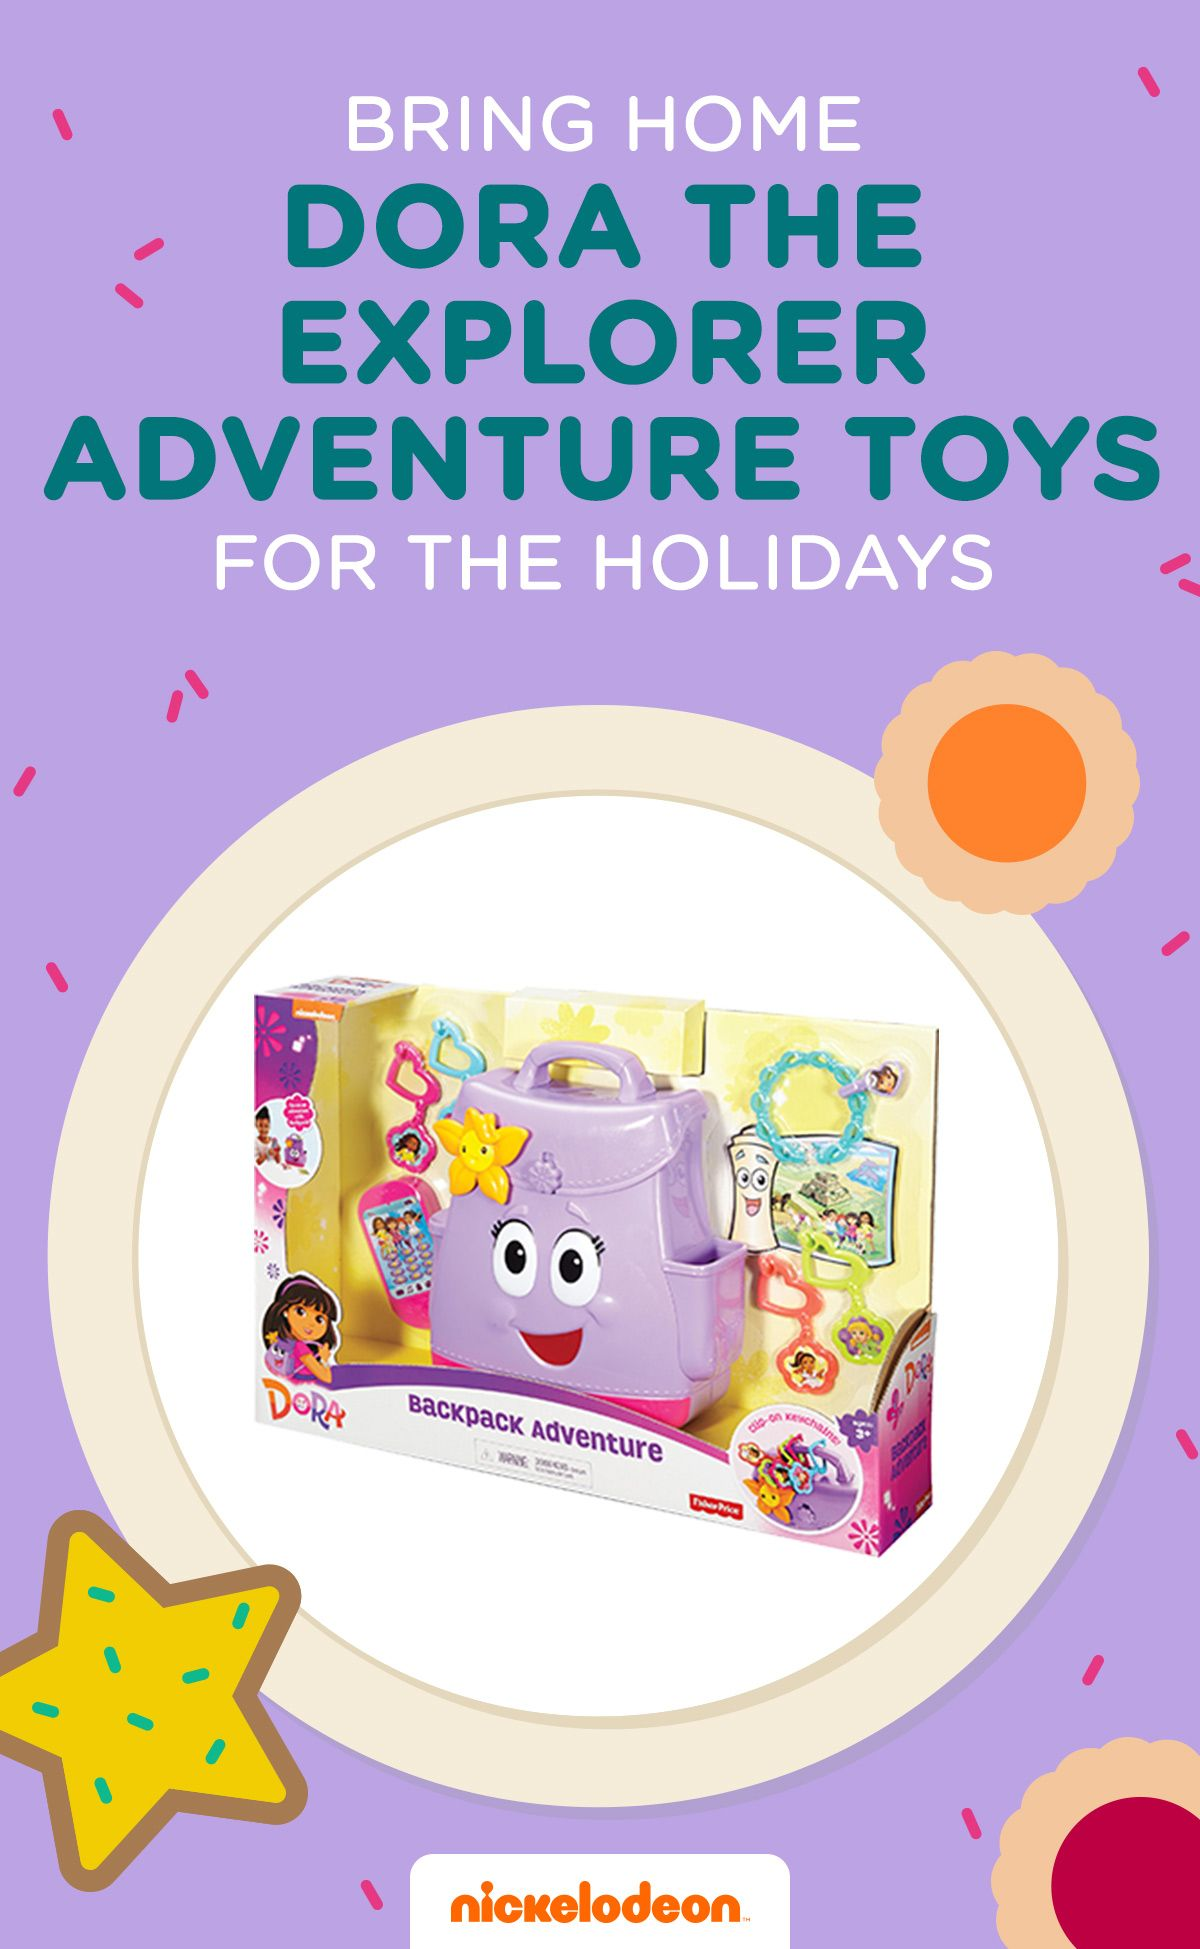 12 days of nick jr holiday sweepstakes and contest